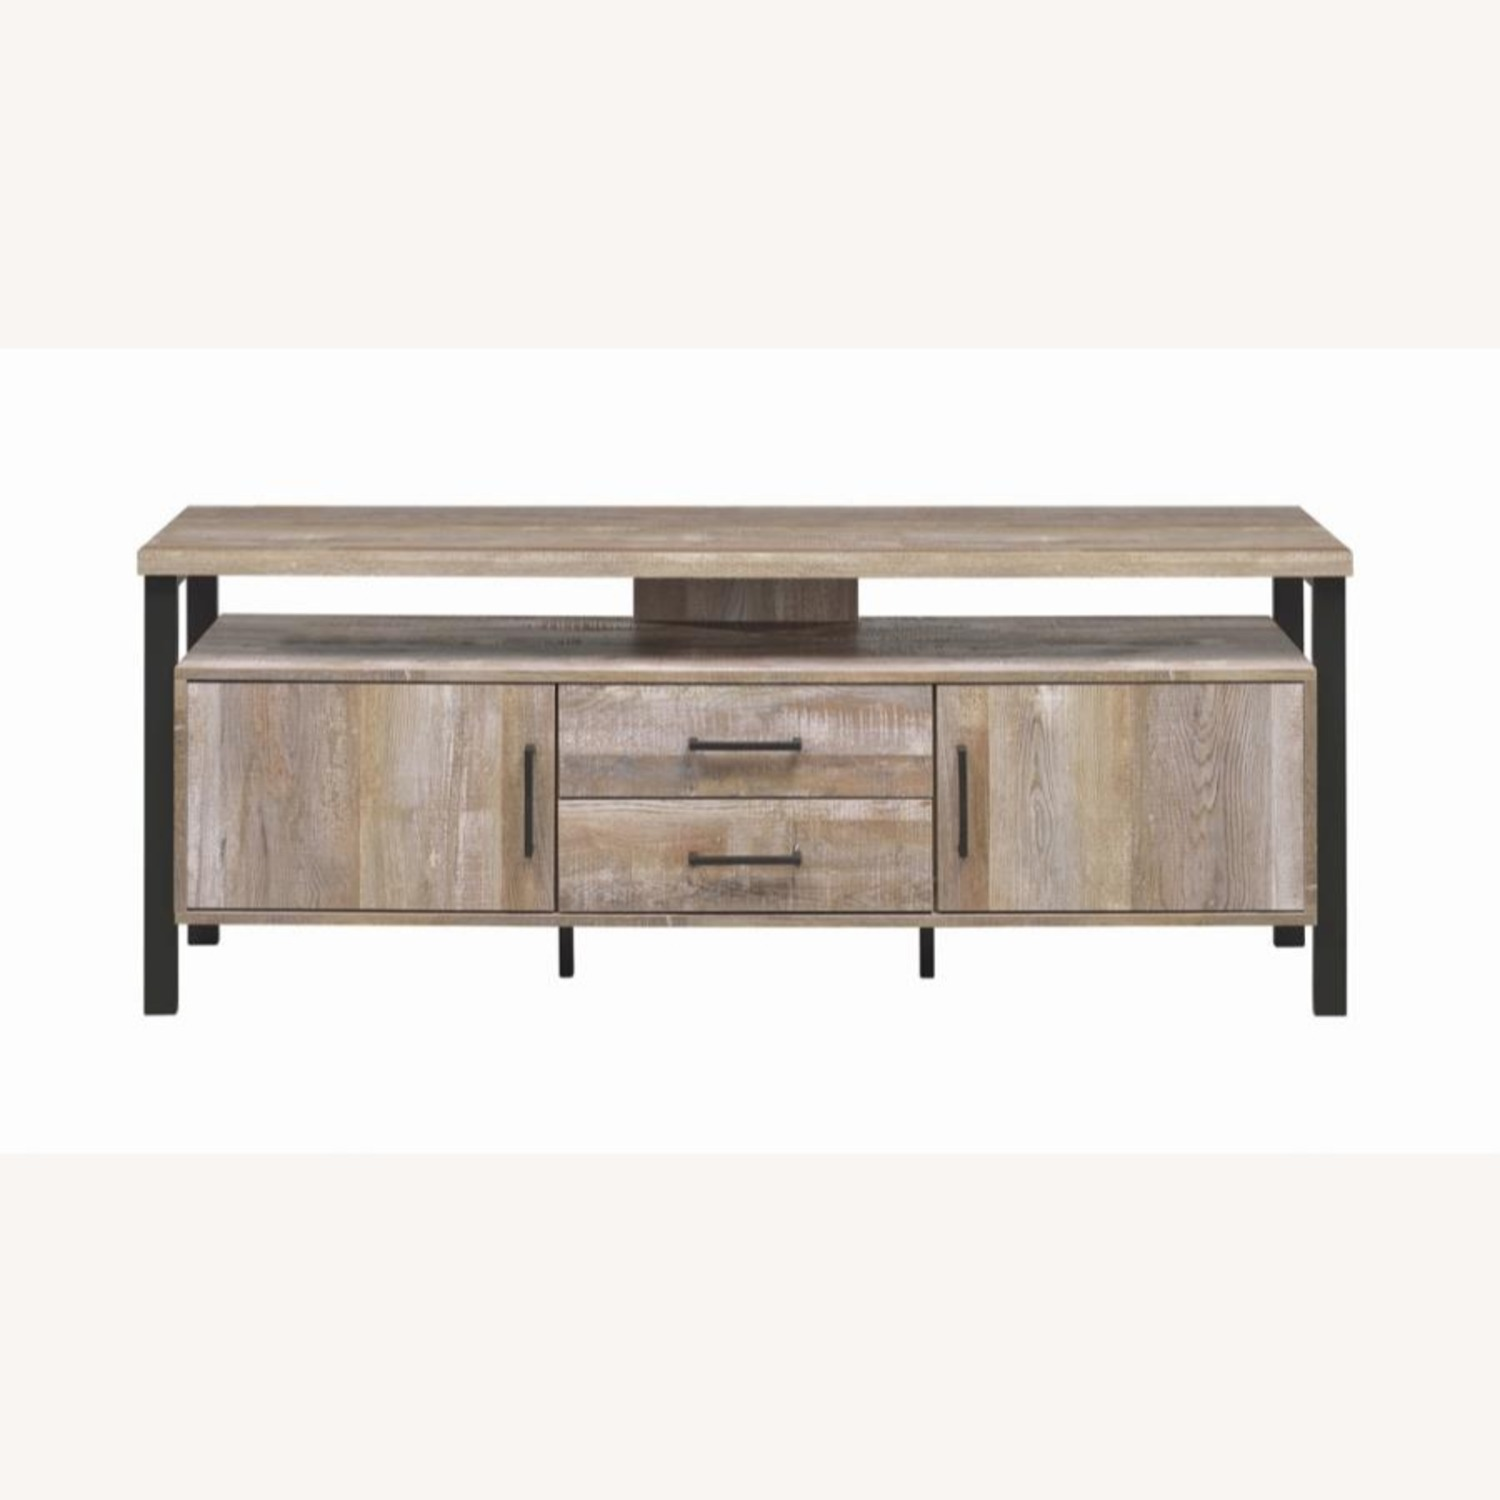 TV Console In Weathered Oak W/ Storage & Shelves - image-2